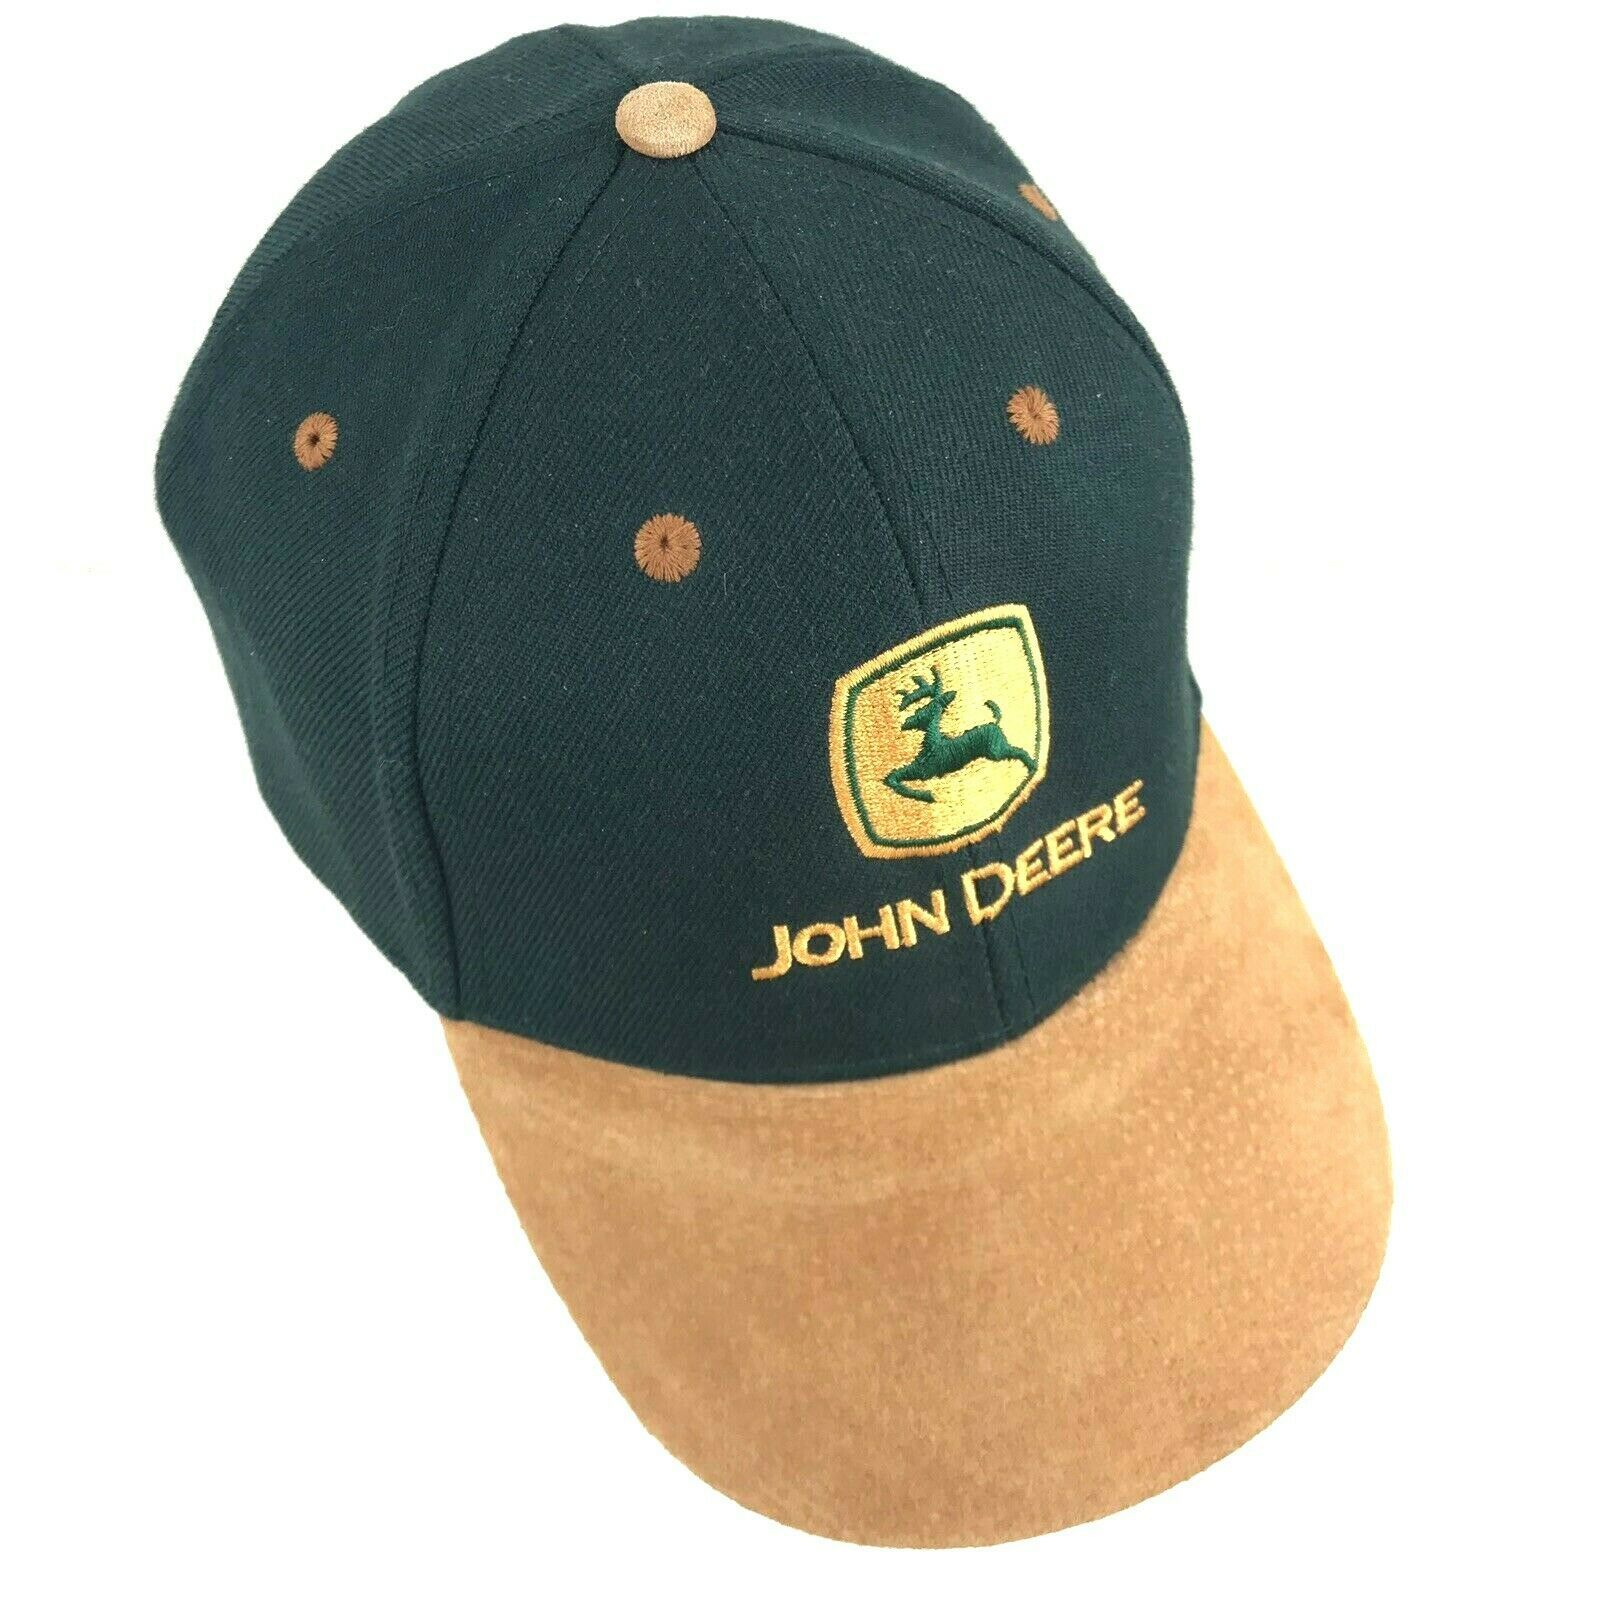 da138aec John Deere Cap Hat Green and Gold With Suede Bill Adjustable One Size -  $19.80